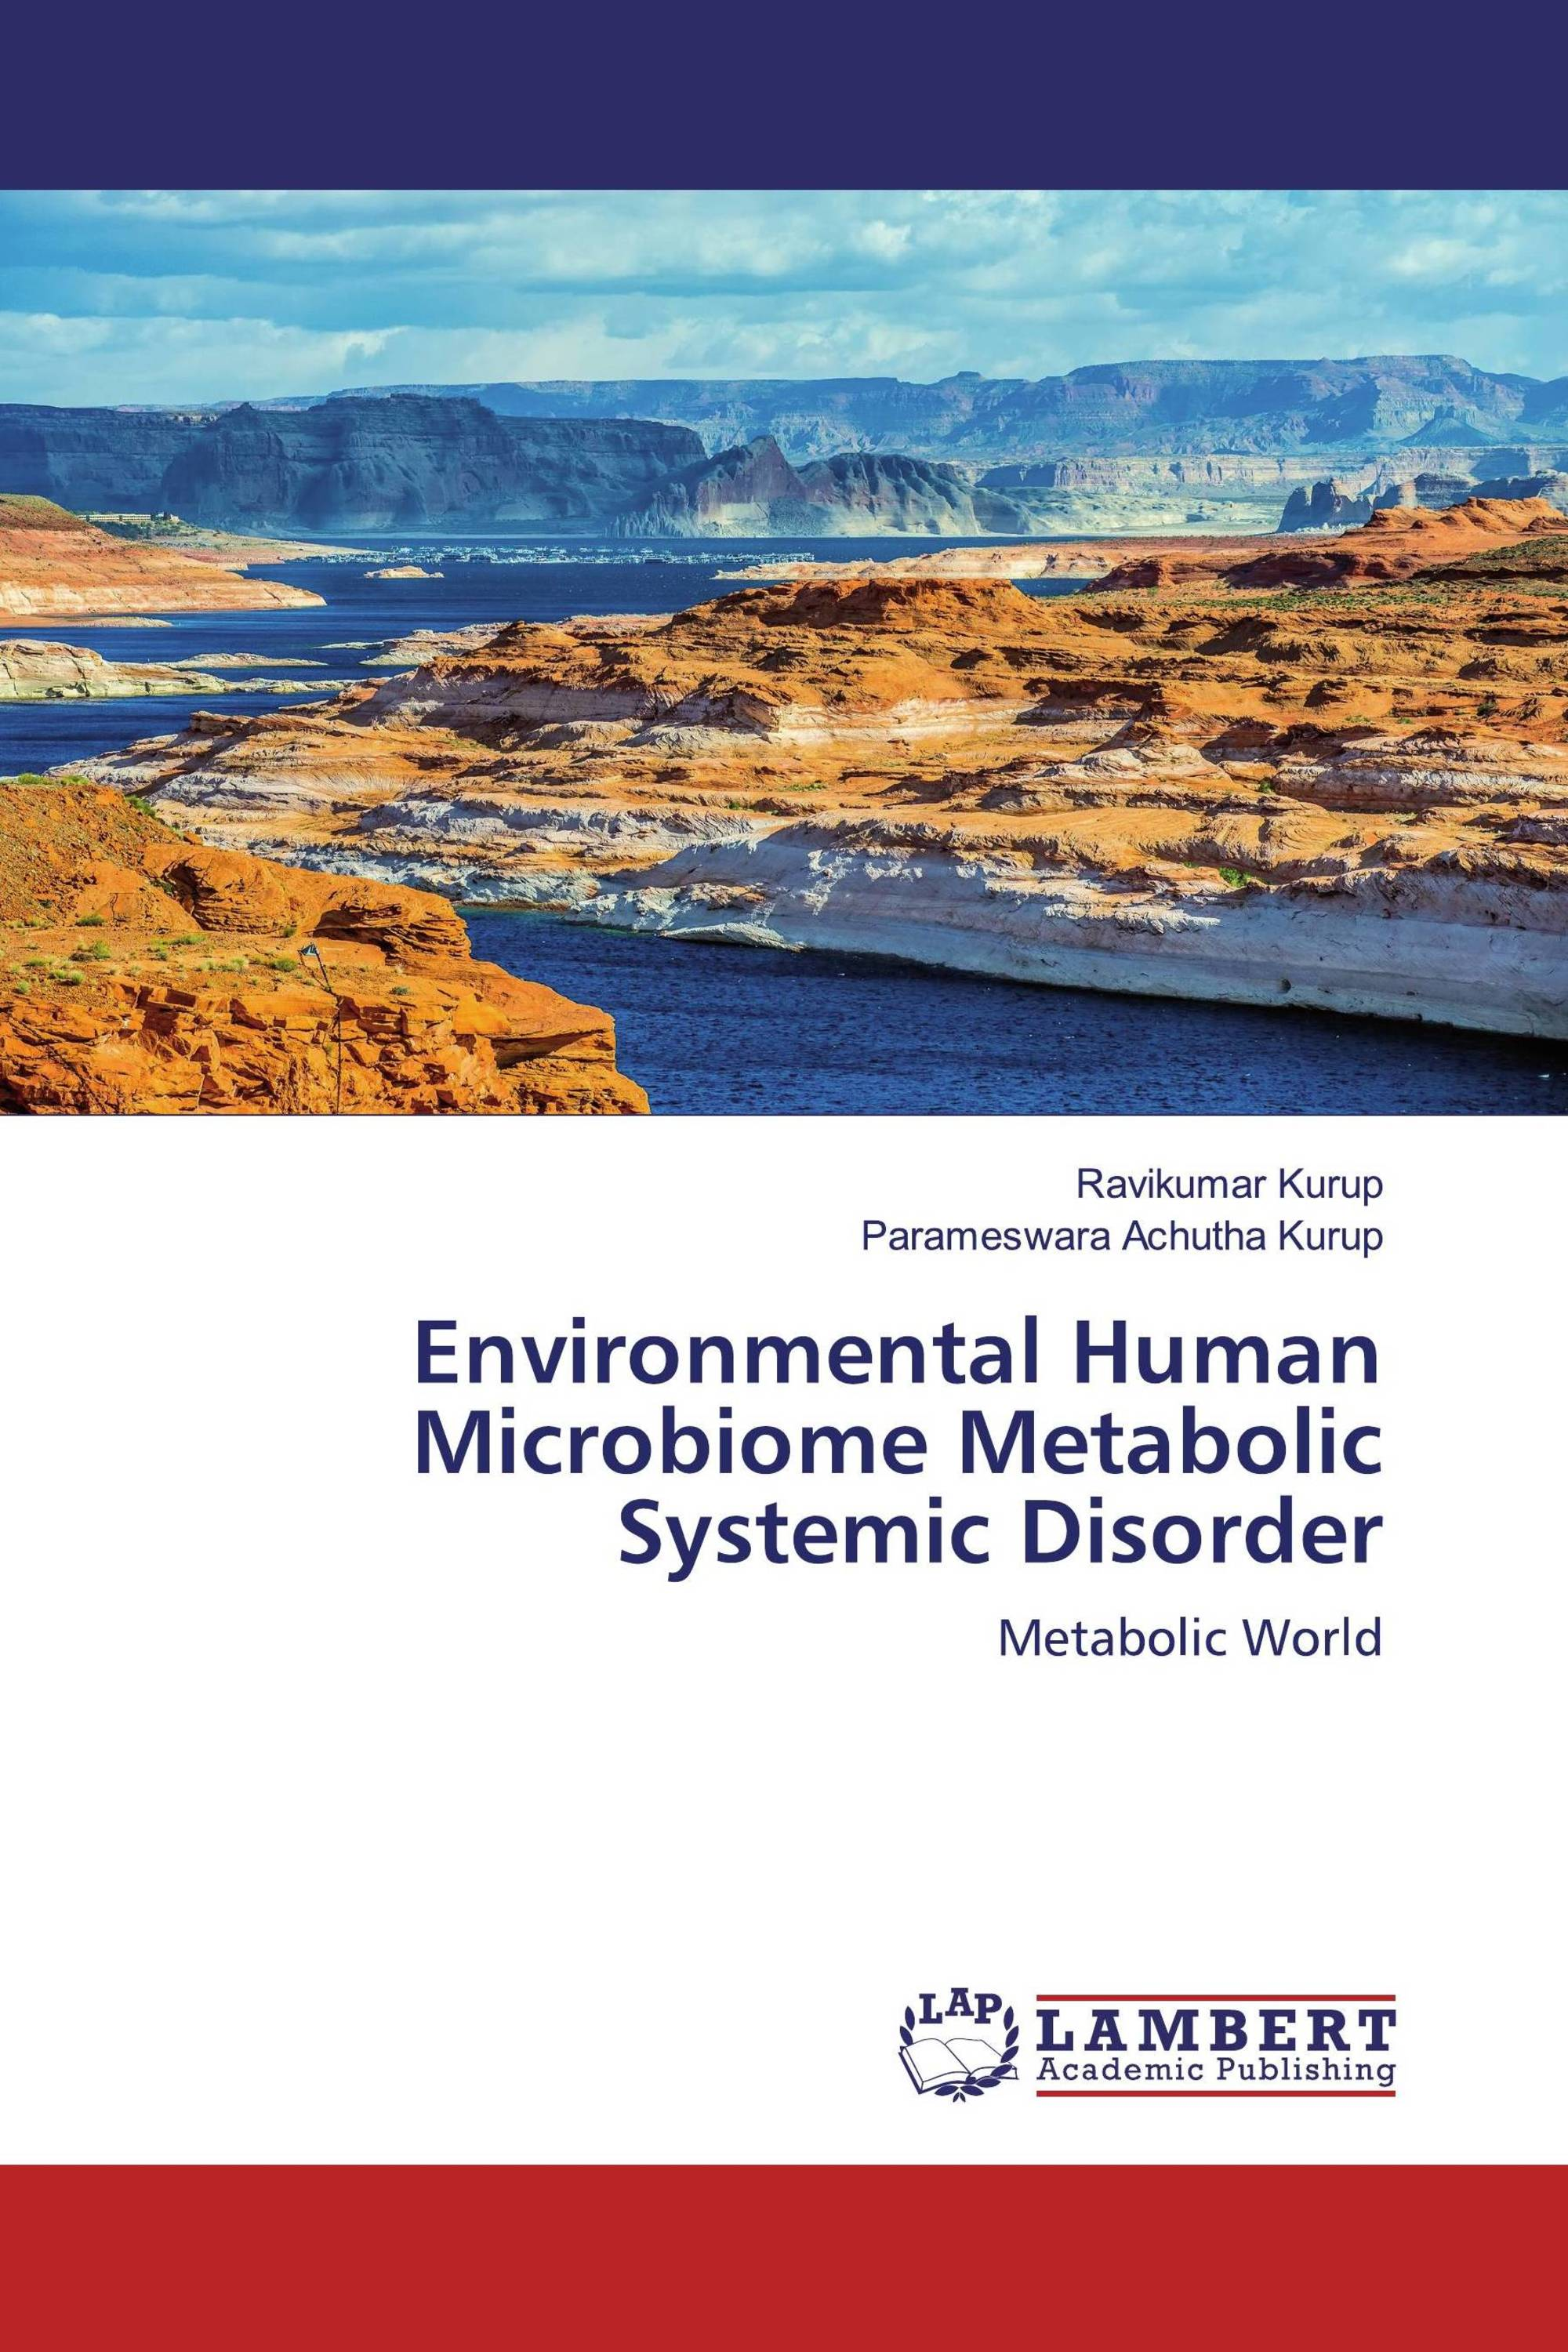 Environmental Human Microbiome Metabolic Systemic Disorder